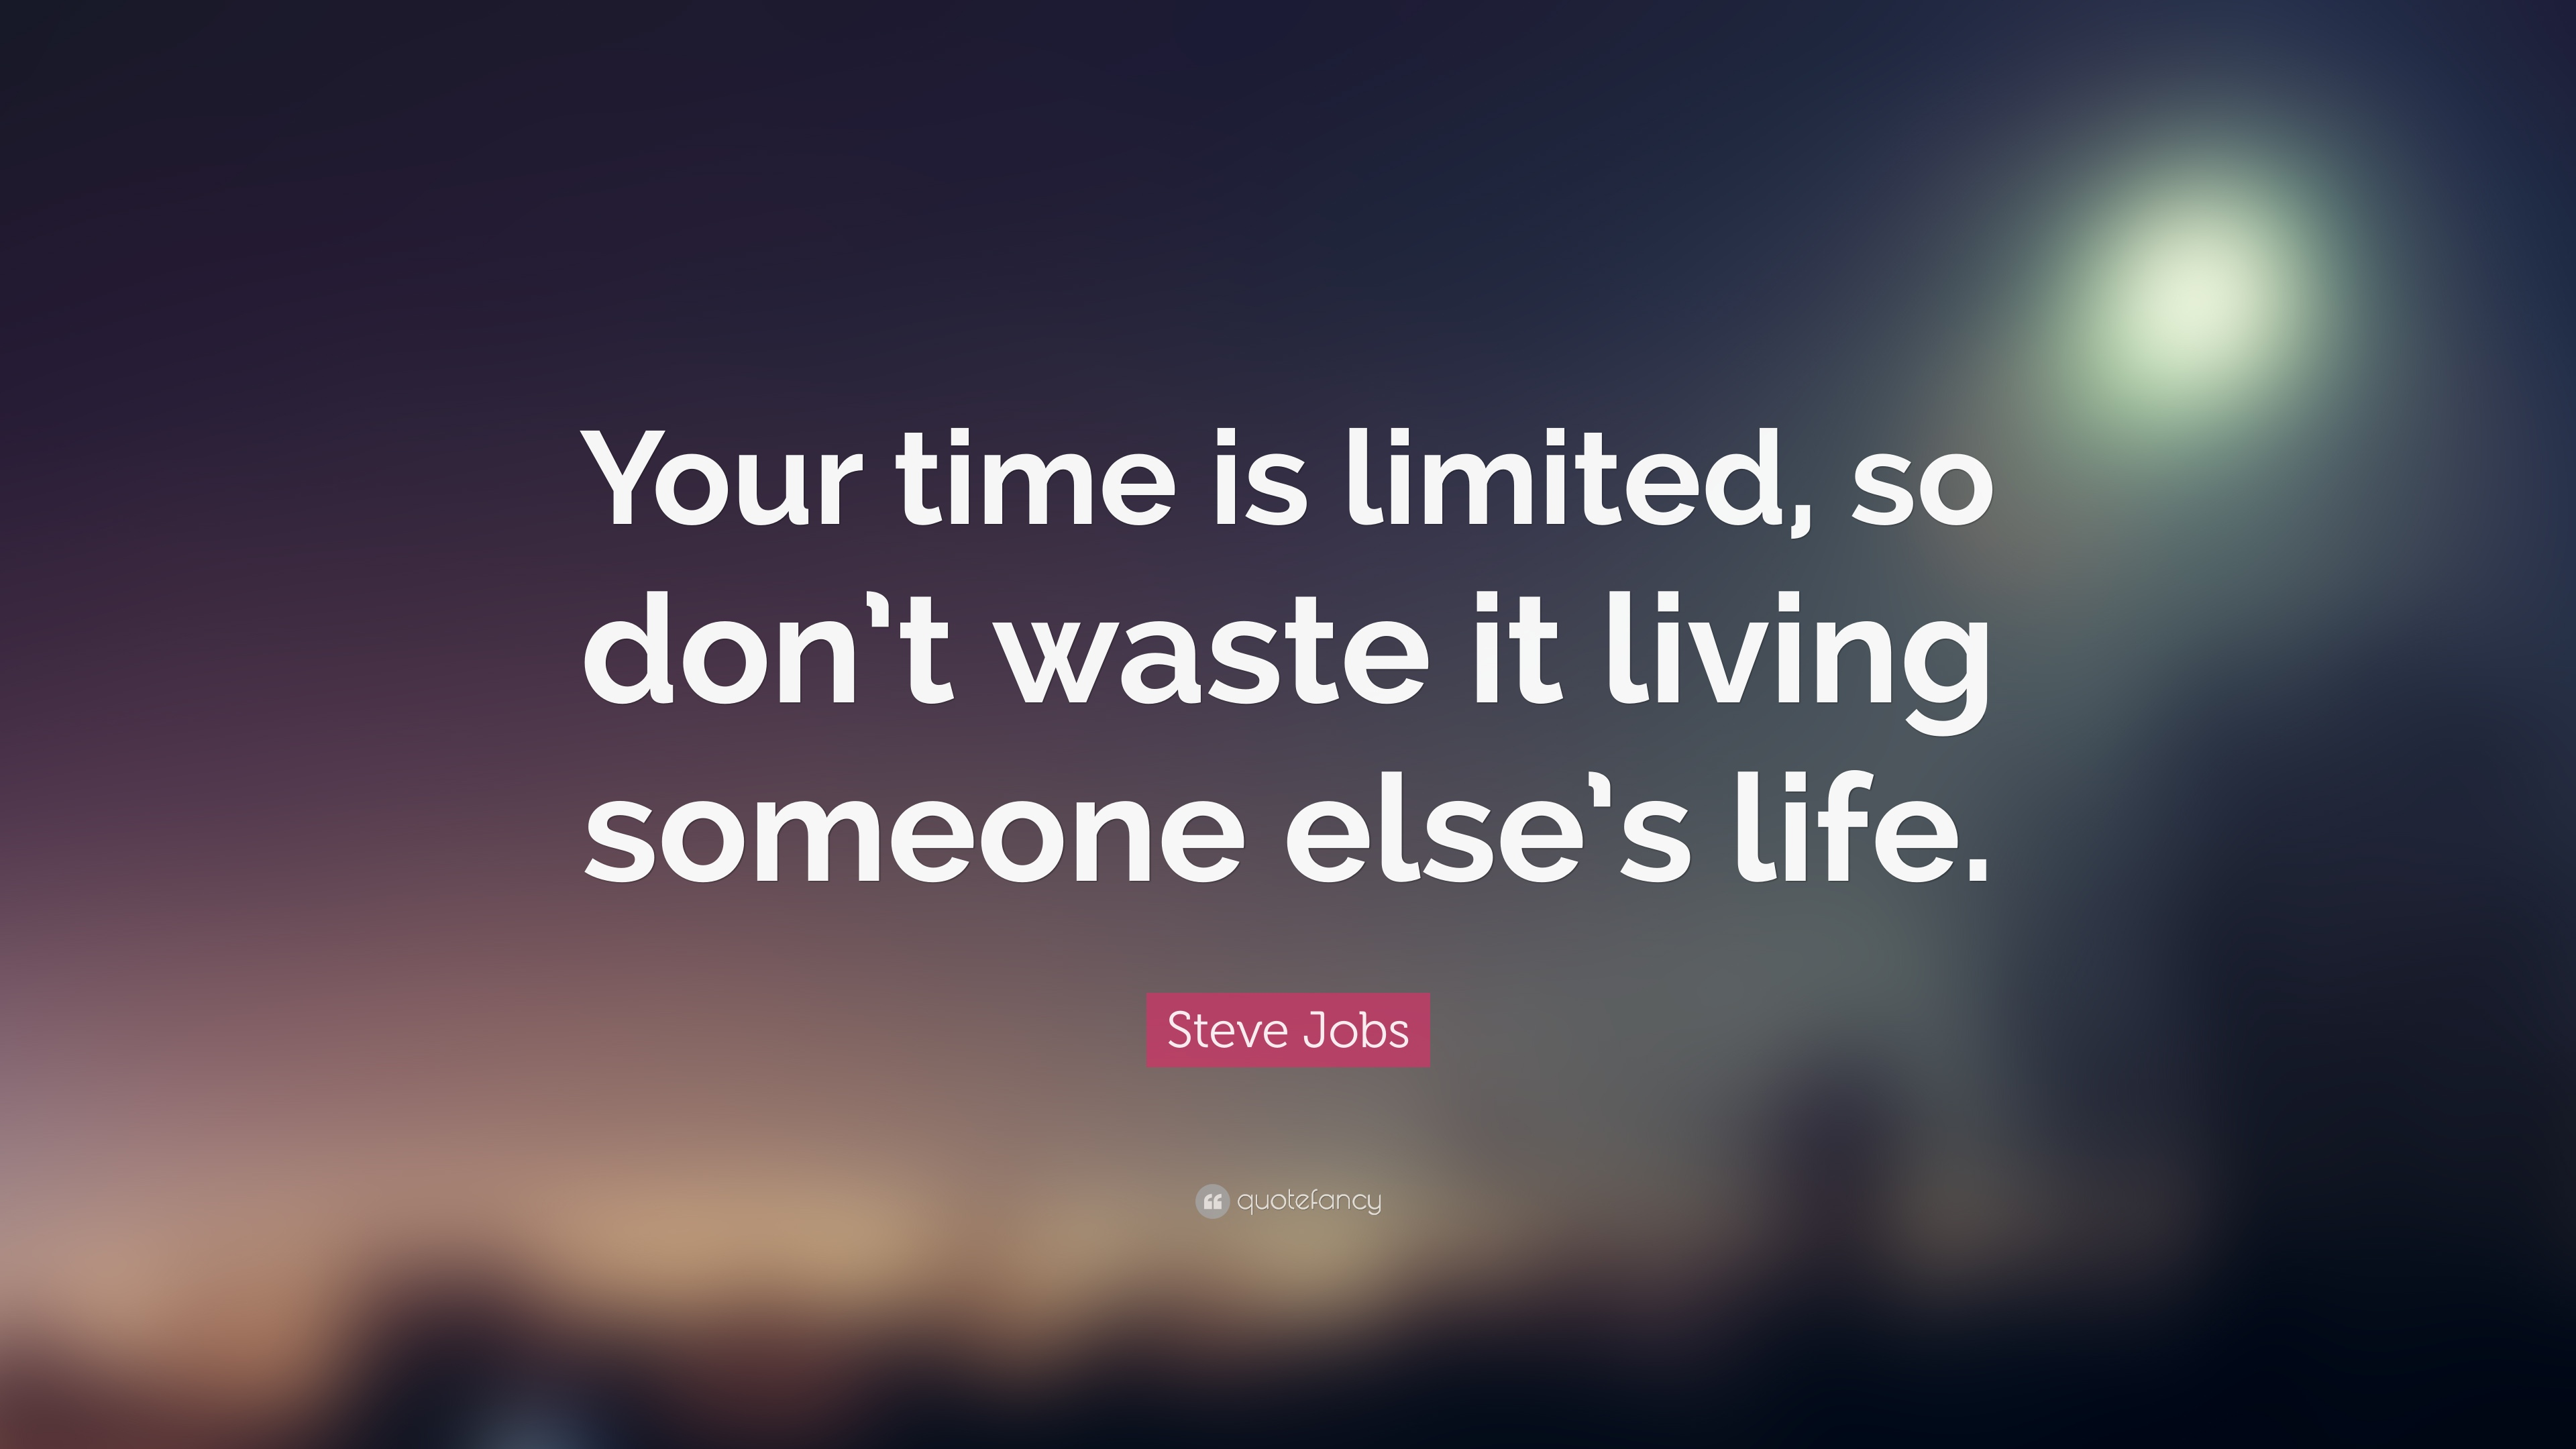 your time is limited so don't 1 steve jobs once said: your time is limited, so don't waste it living someone else's life don't let the noise of others' opinions drown out your own inner voice, your heart and intuition.